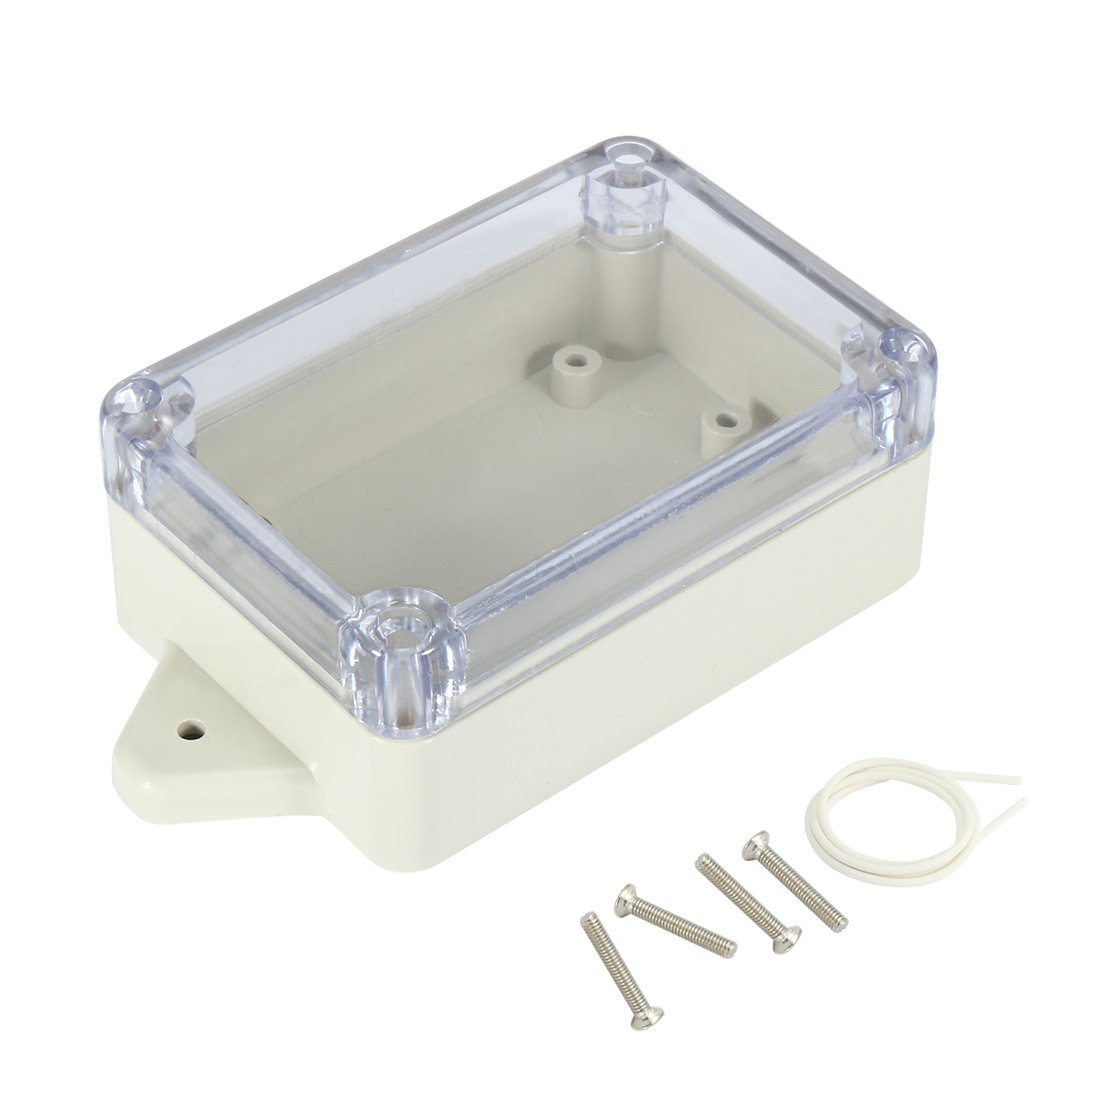 uxcell 3.3x2.3x1.3(83mmx58mmx33mm) ABS Junction Box Universal Project Enclosure w PC Transparent Cover a17031600ux1147